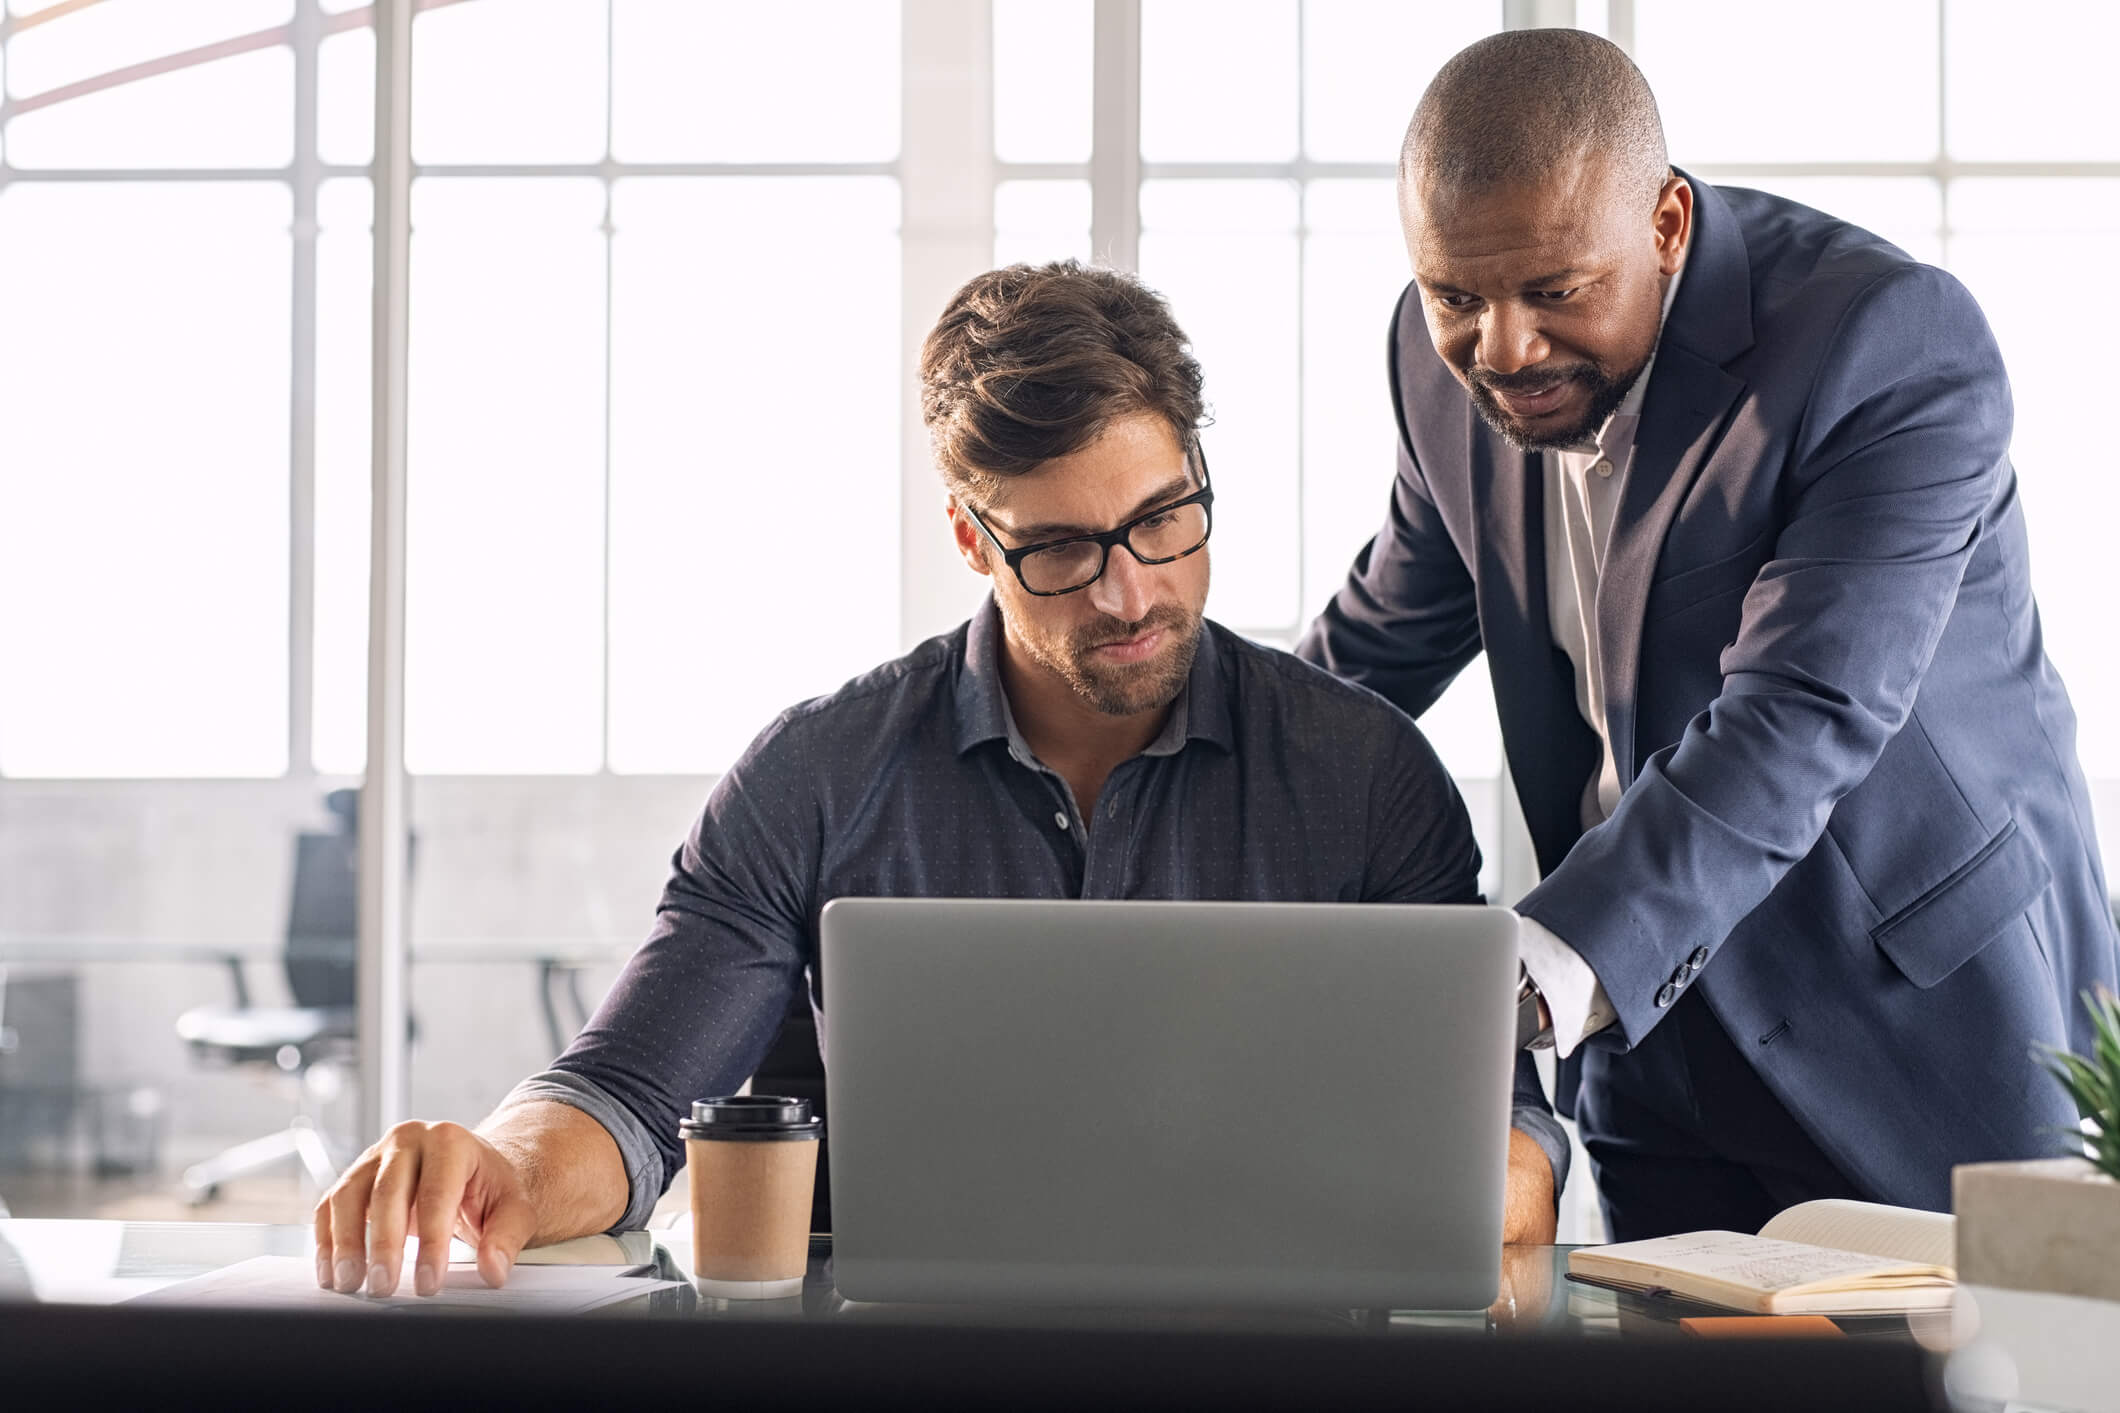 man showing another man how to use HR analytics at desk with laptop